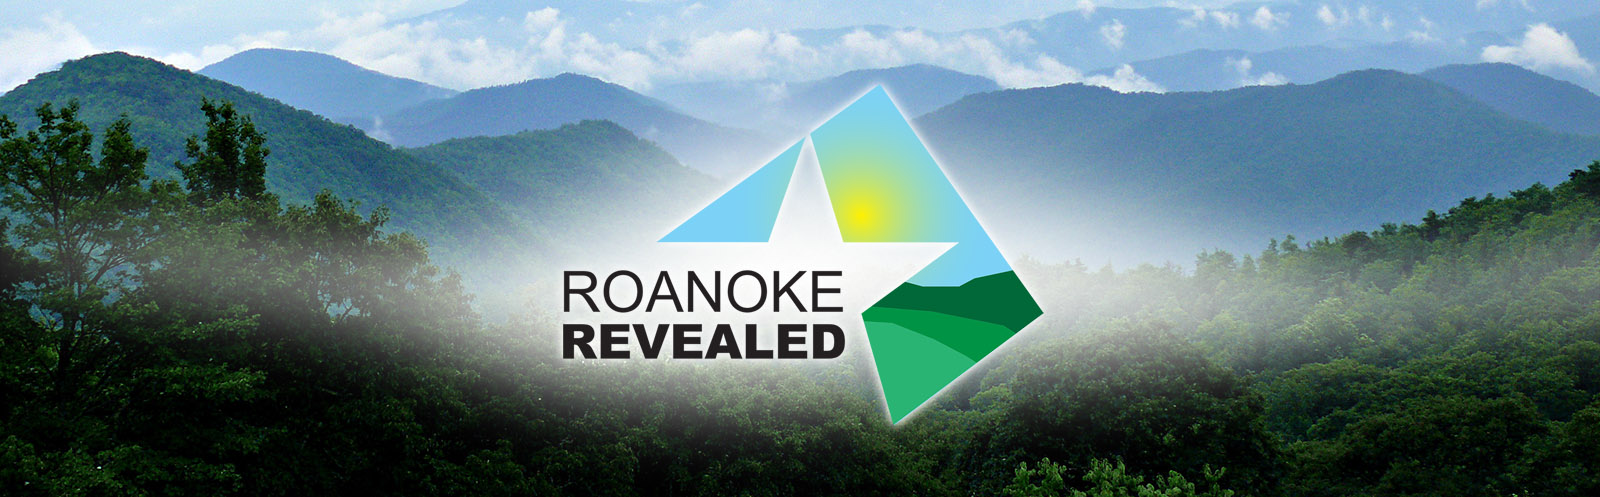 Roanoke Revealed